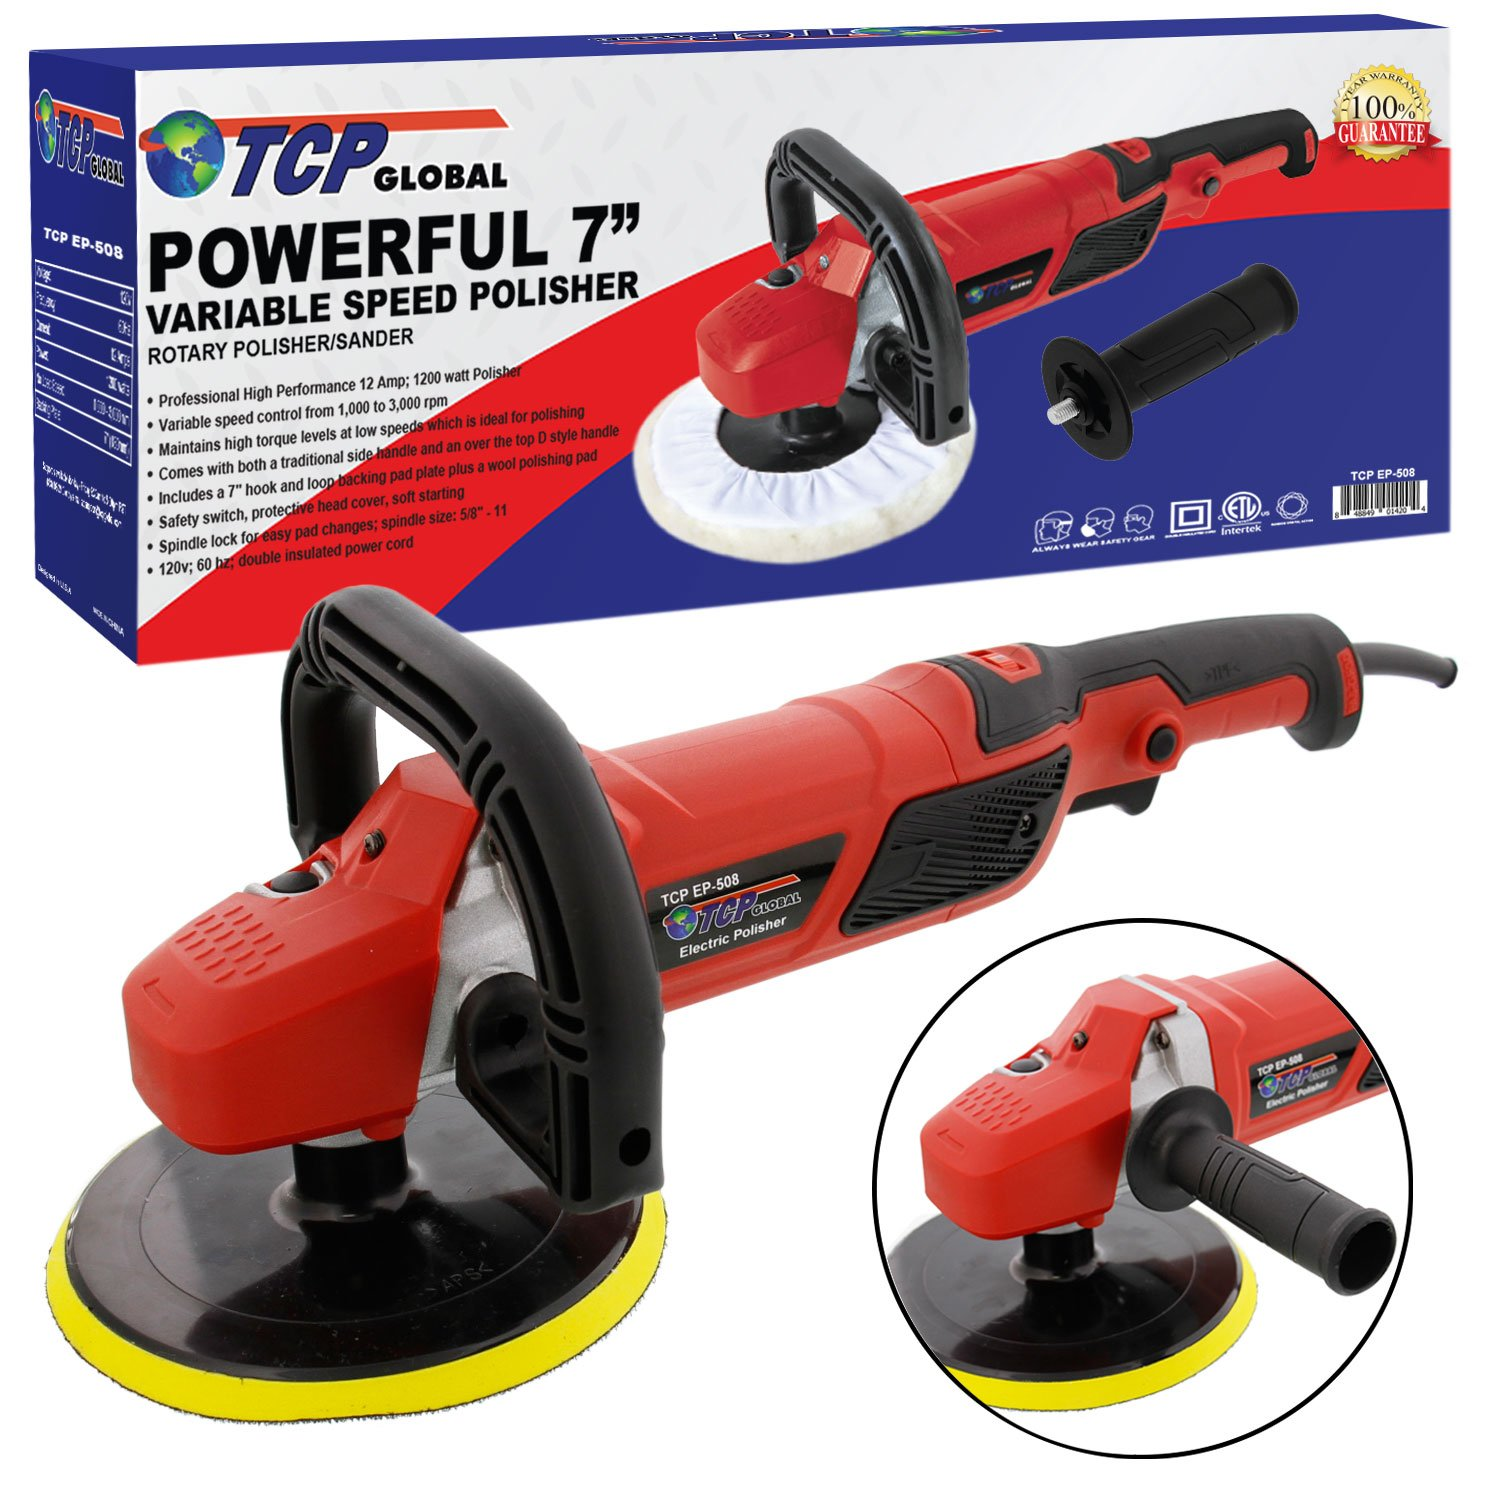 TCP Global 7'' Professional High Performance Variable Speed Polisher with a Powerful 12 Amp, 1200 Watt Motor - Buff, Polish & Detail Car Auto Paint